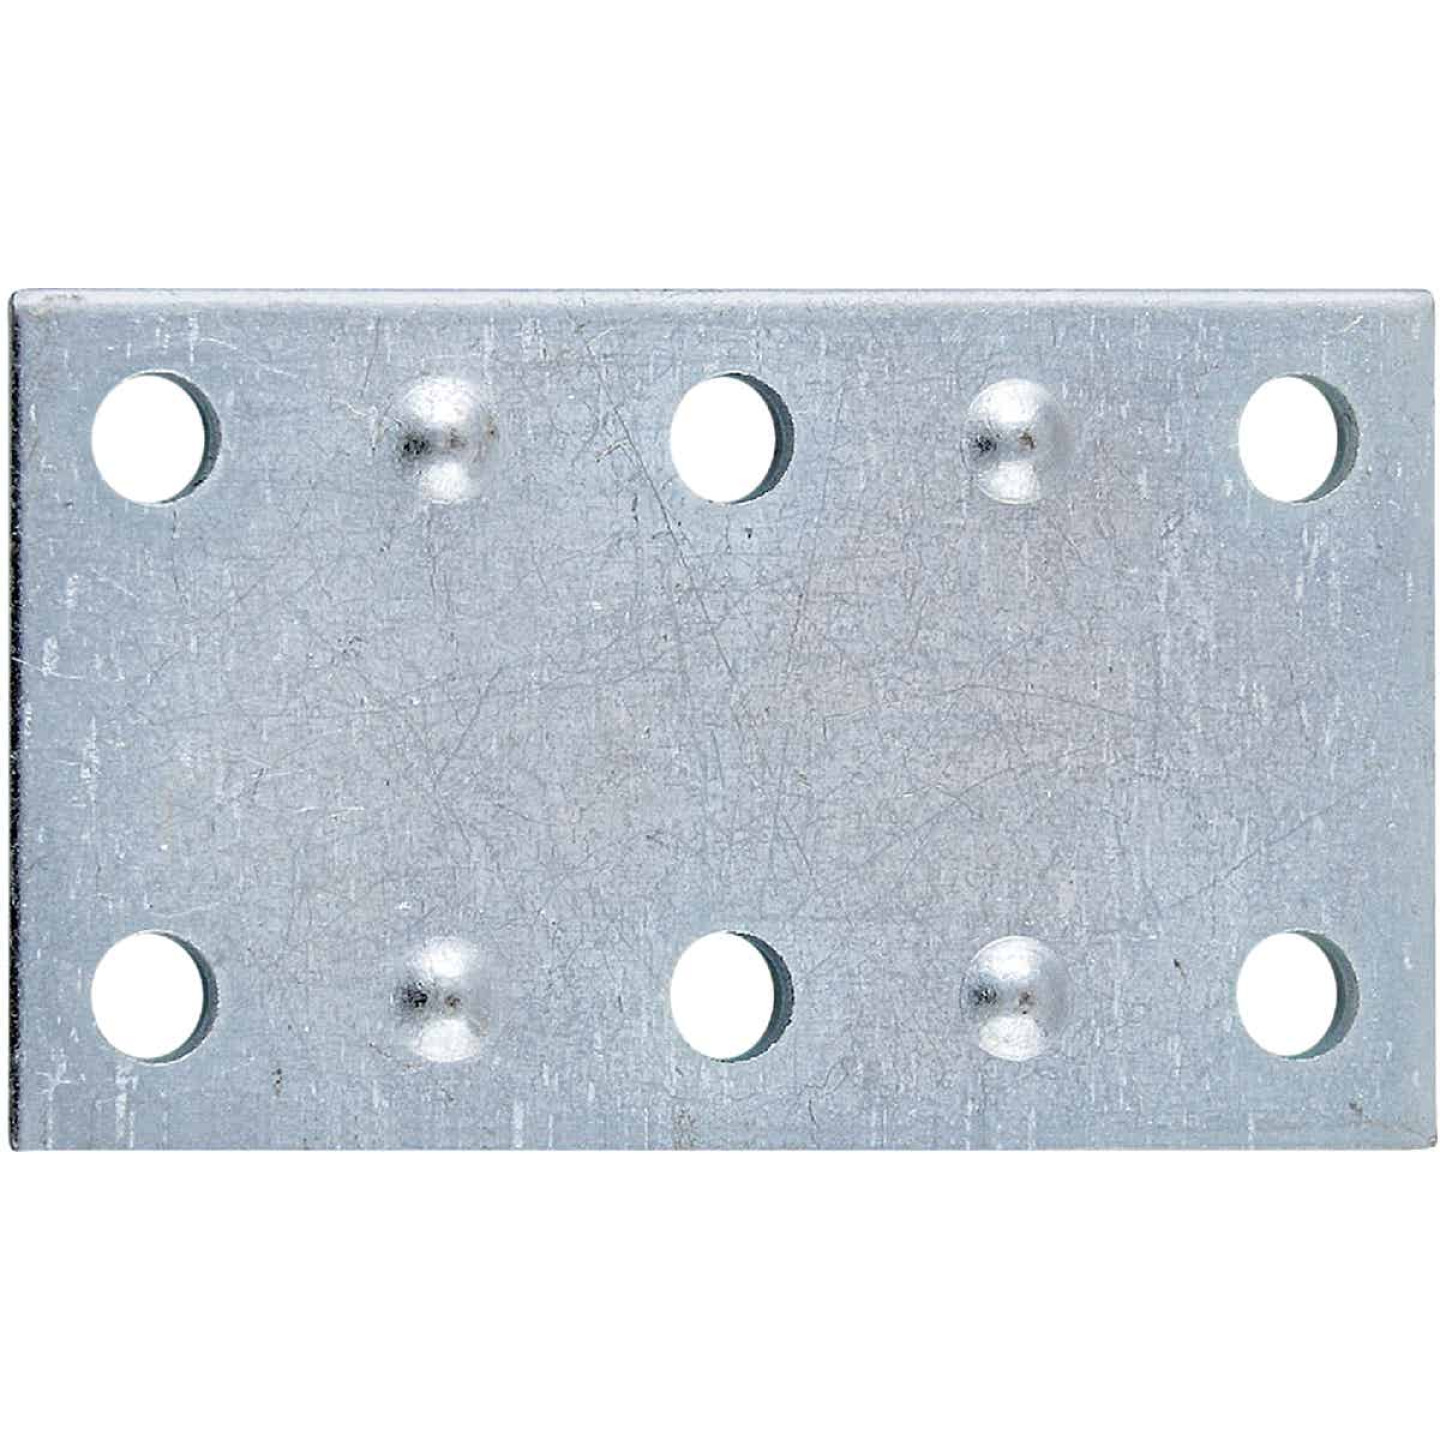 National Catalog V119 2-1/2 In. x 1-3/8 In. Mending Plate (4-Count) Image 1